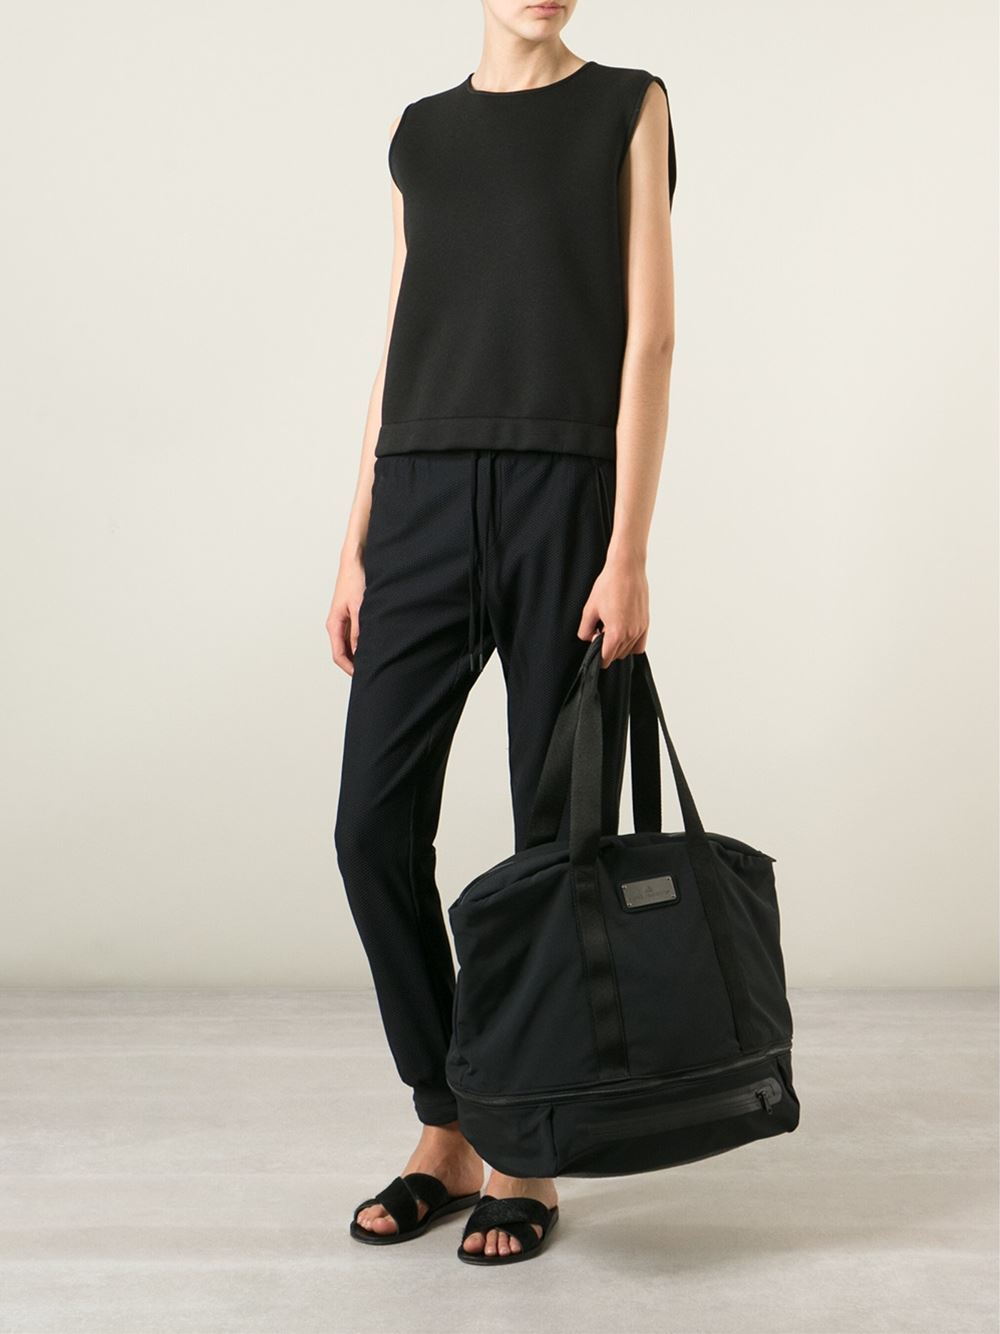 adidas by stella mccartney 39 iconic 39 tote in black black gunmetal lyst. Black Bedroom Furniture Sets. Home Design Ideas